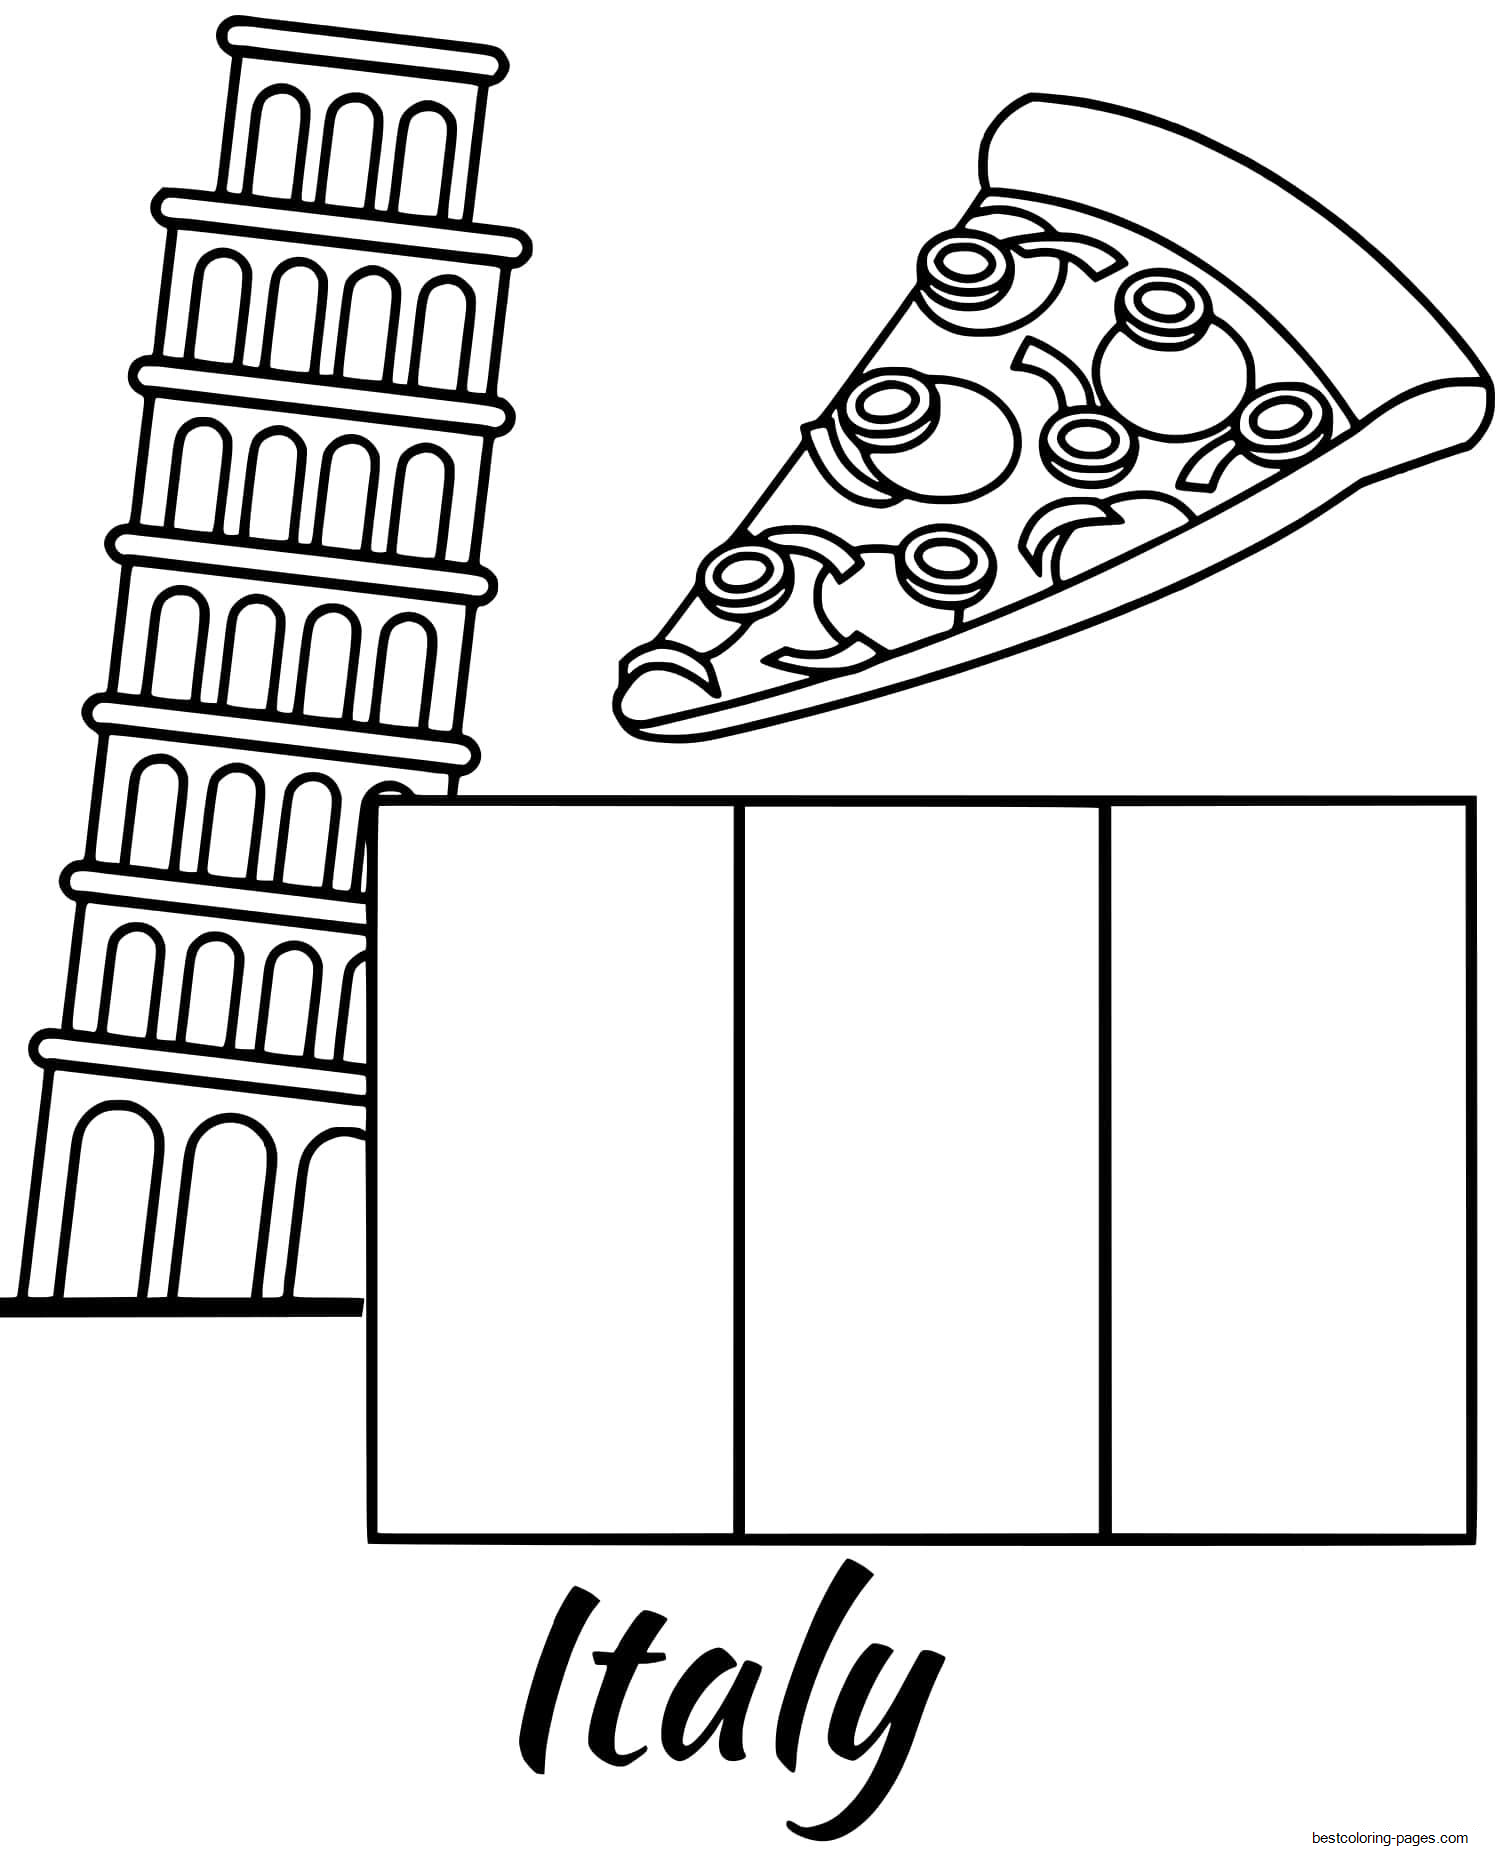 flag of italy to color italian flag coloring sheet in 2020 coloring sheets flag color italy of to